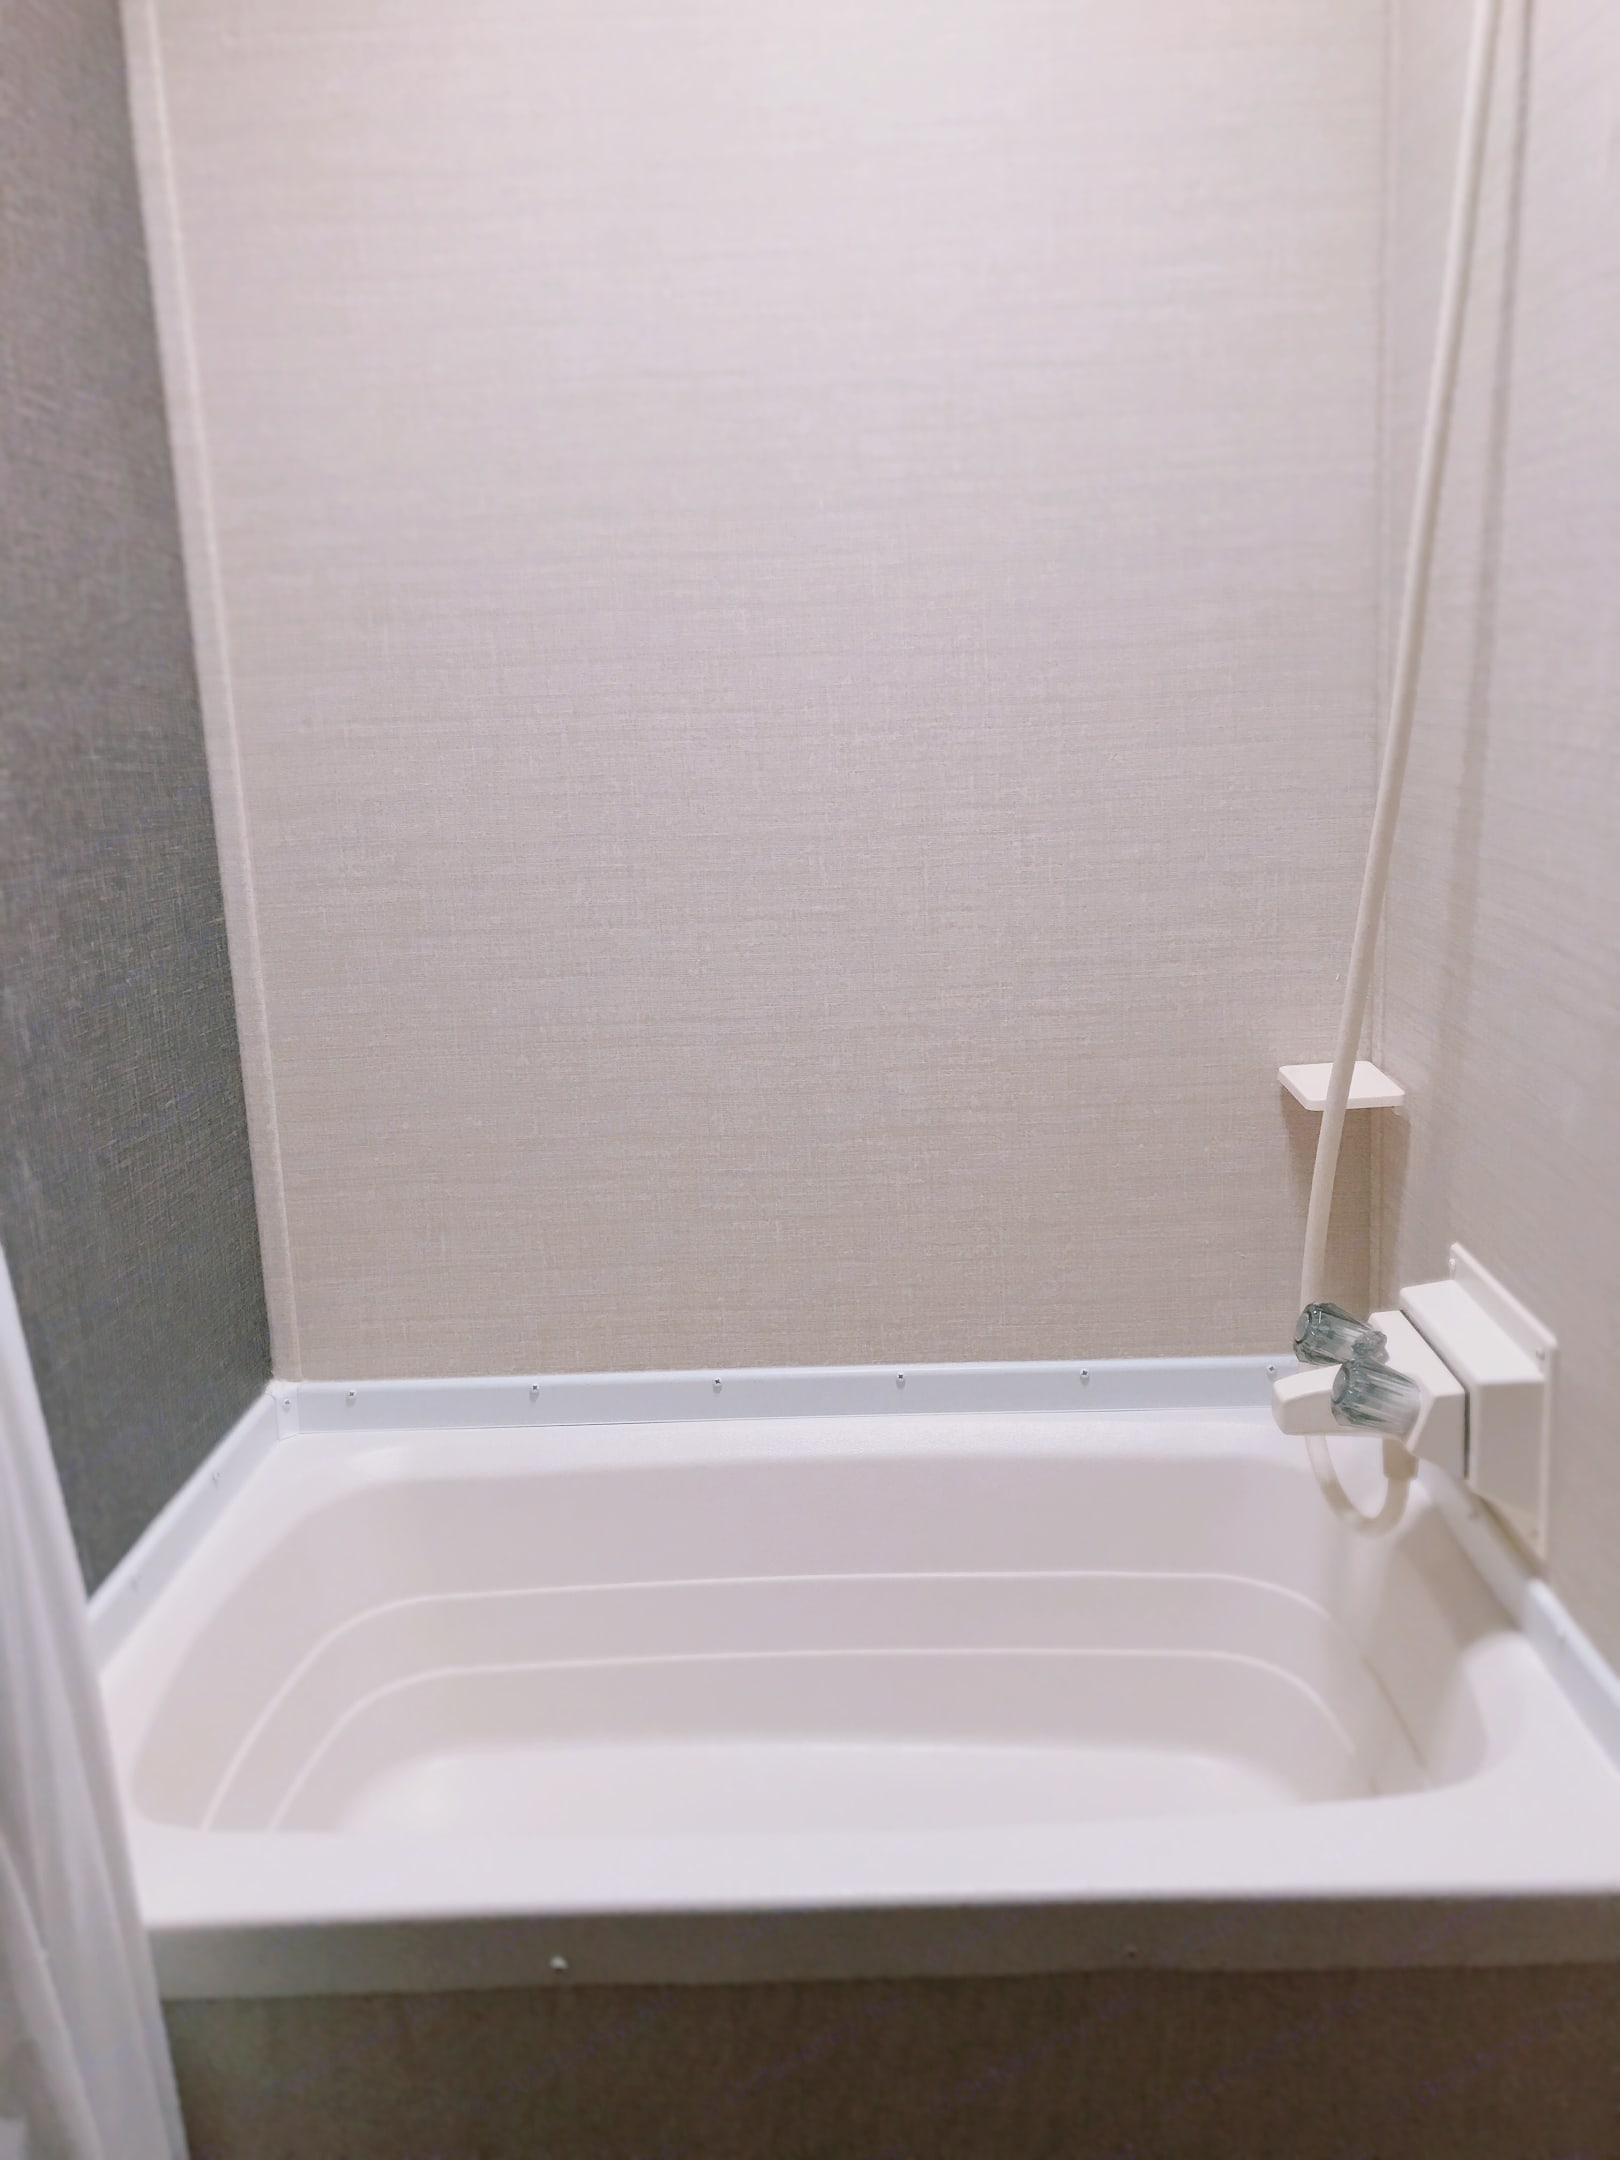 Decent sized shower. You need to bring your own personal toiletries. Bathmat + toilet paper + tank treatmentprovided. . Keystone Summerland 2015